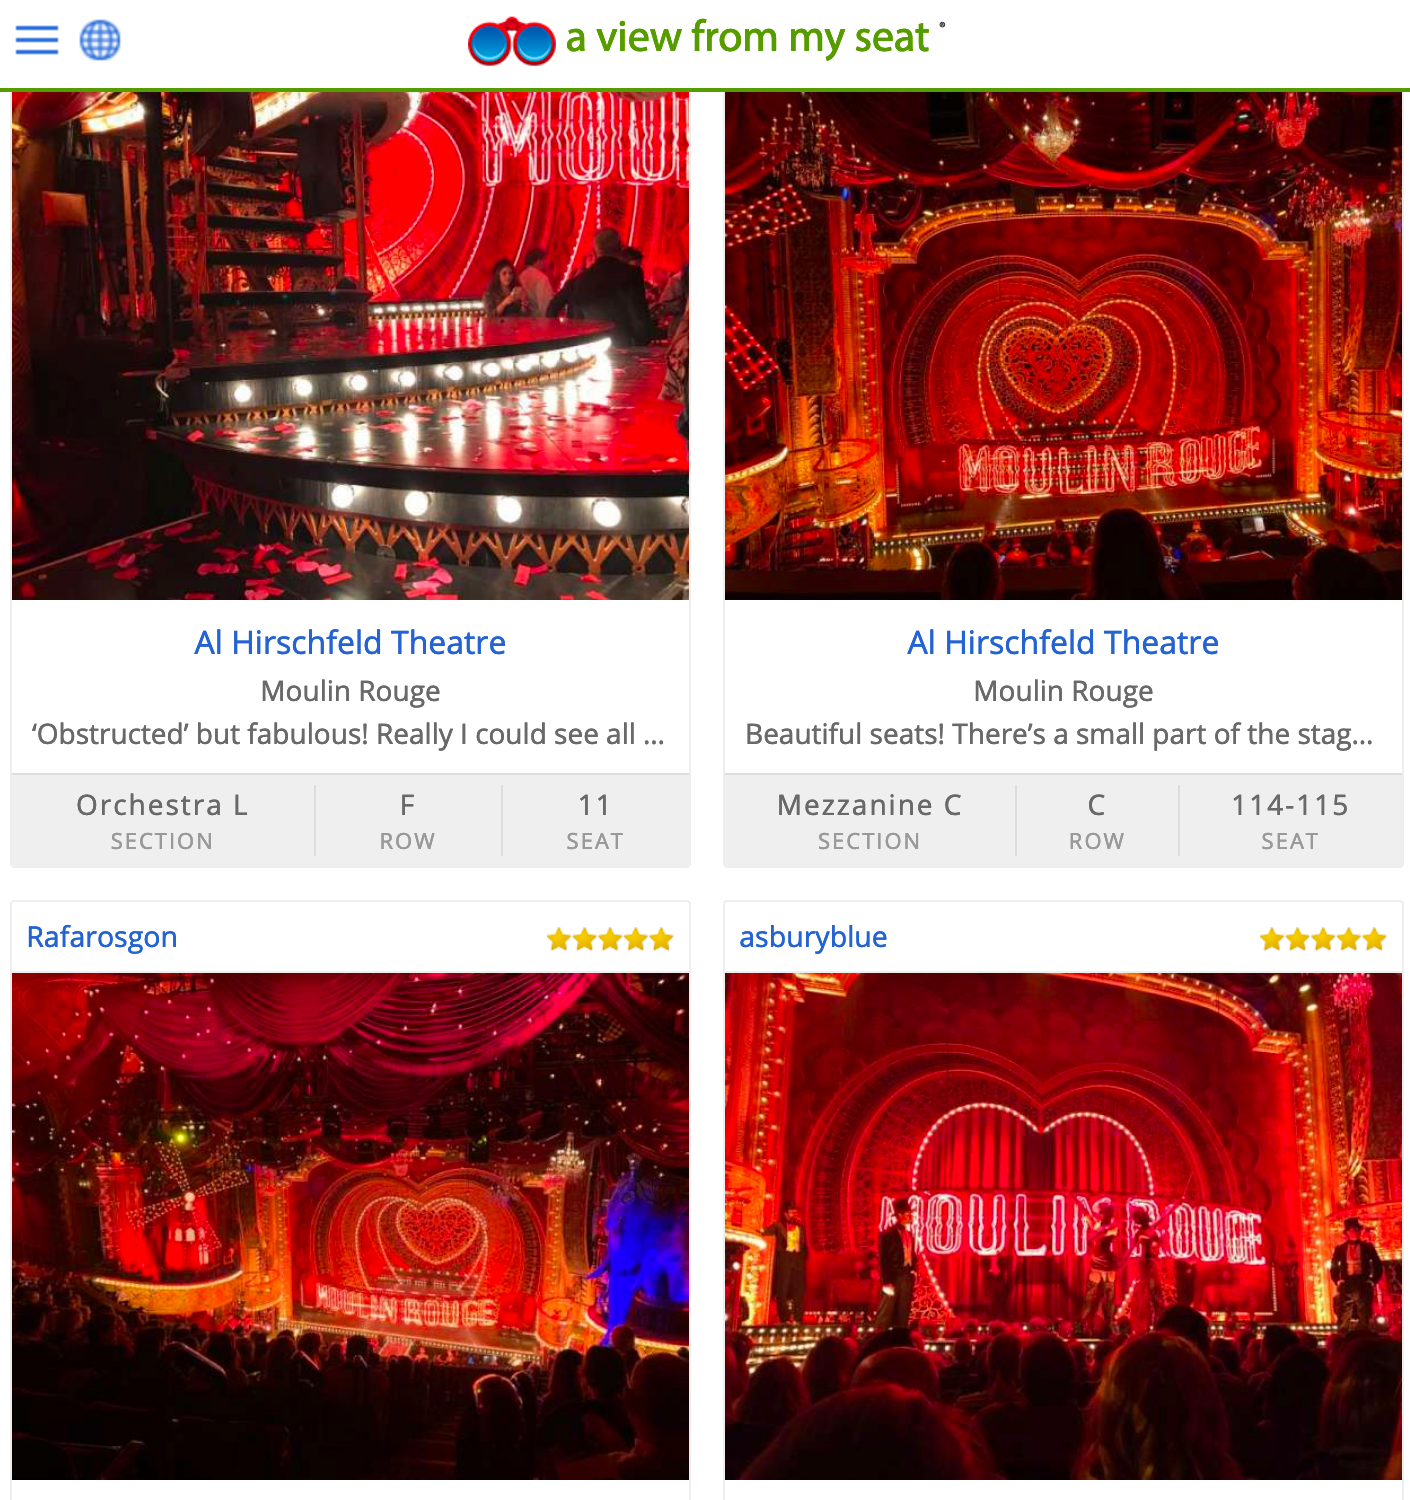 Screenshot from A View From My Seat shows viewing angles at Moulin Rouge as photographed from different seats in the theater.